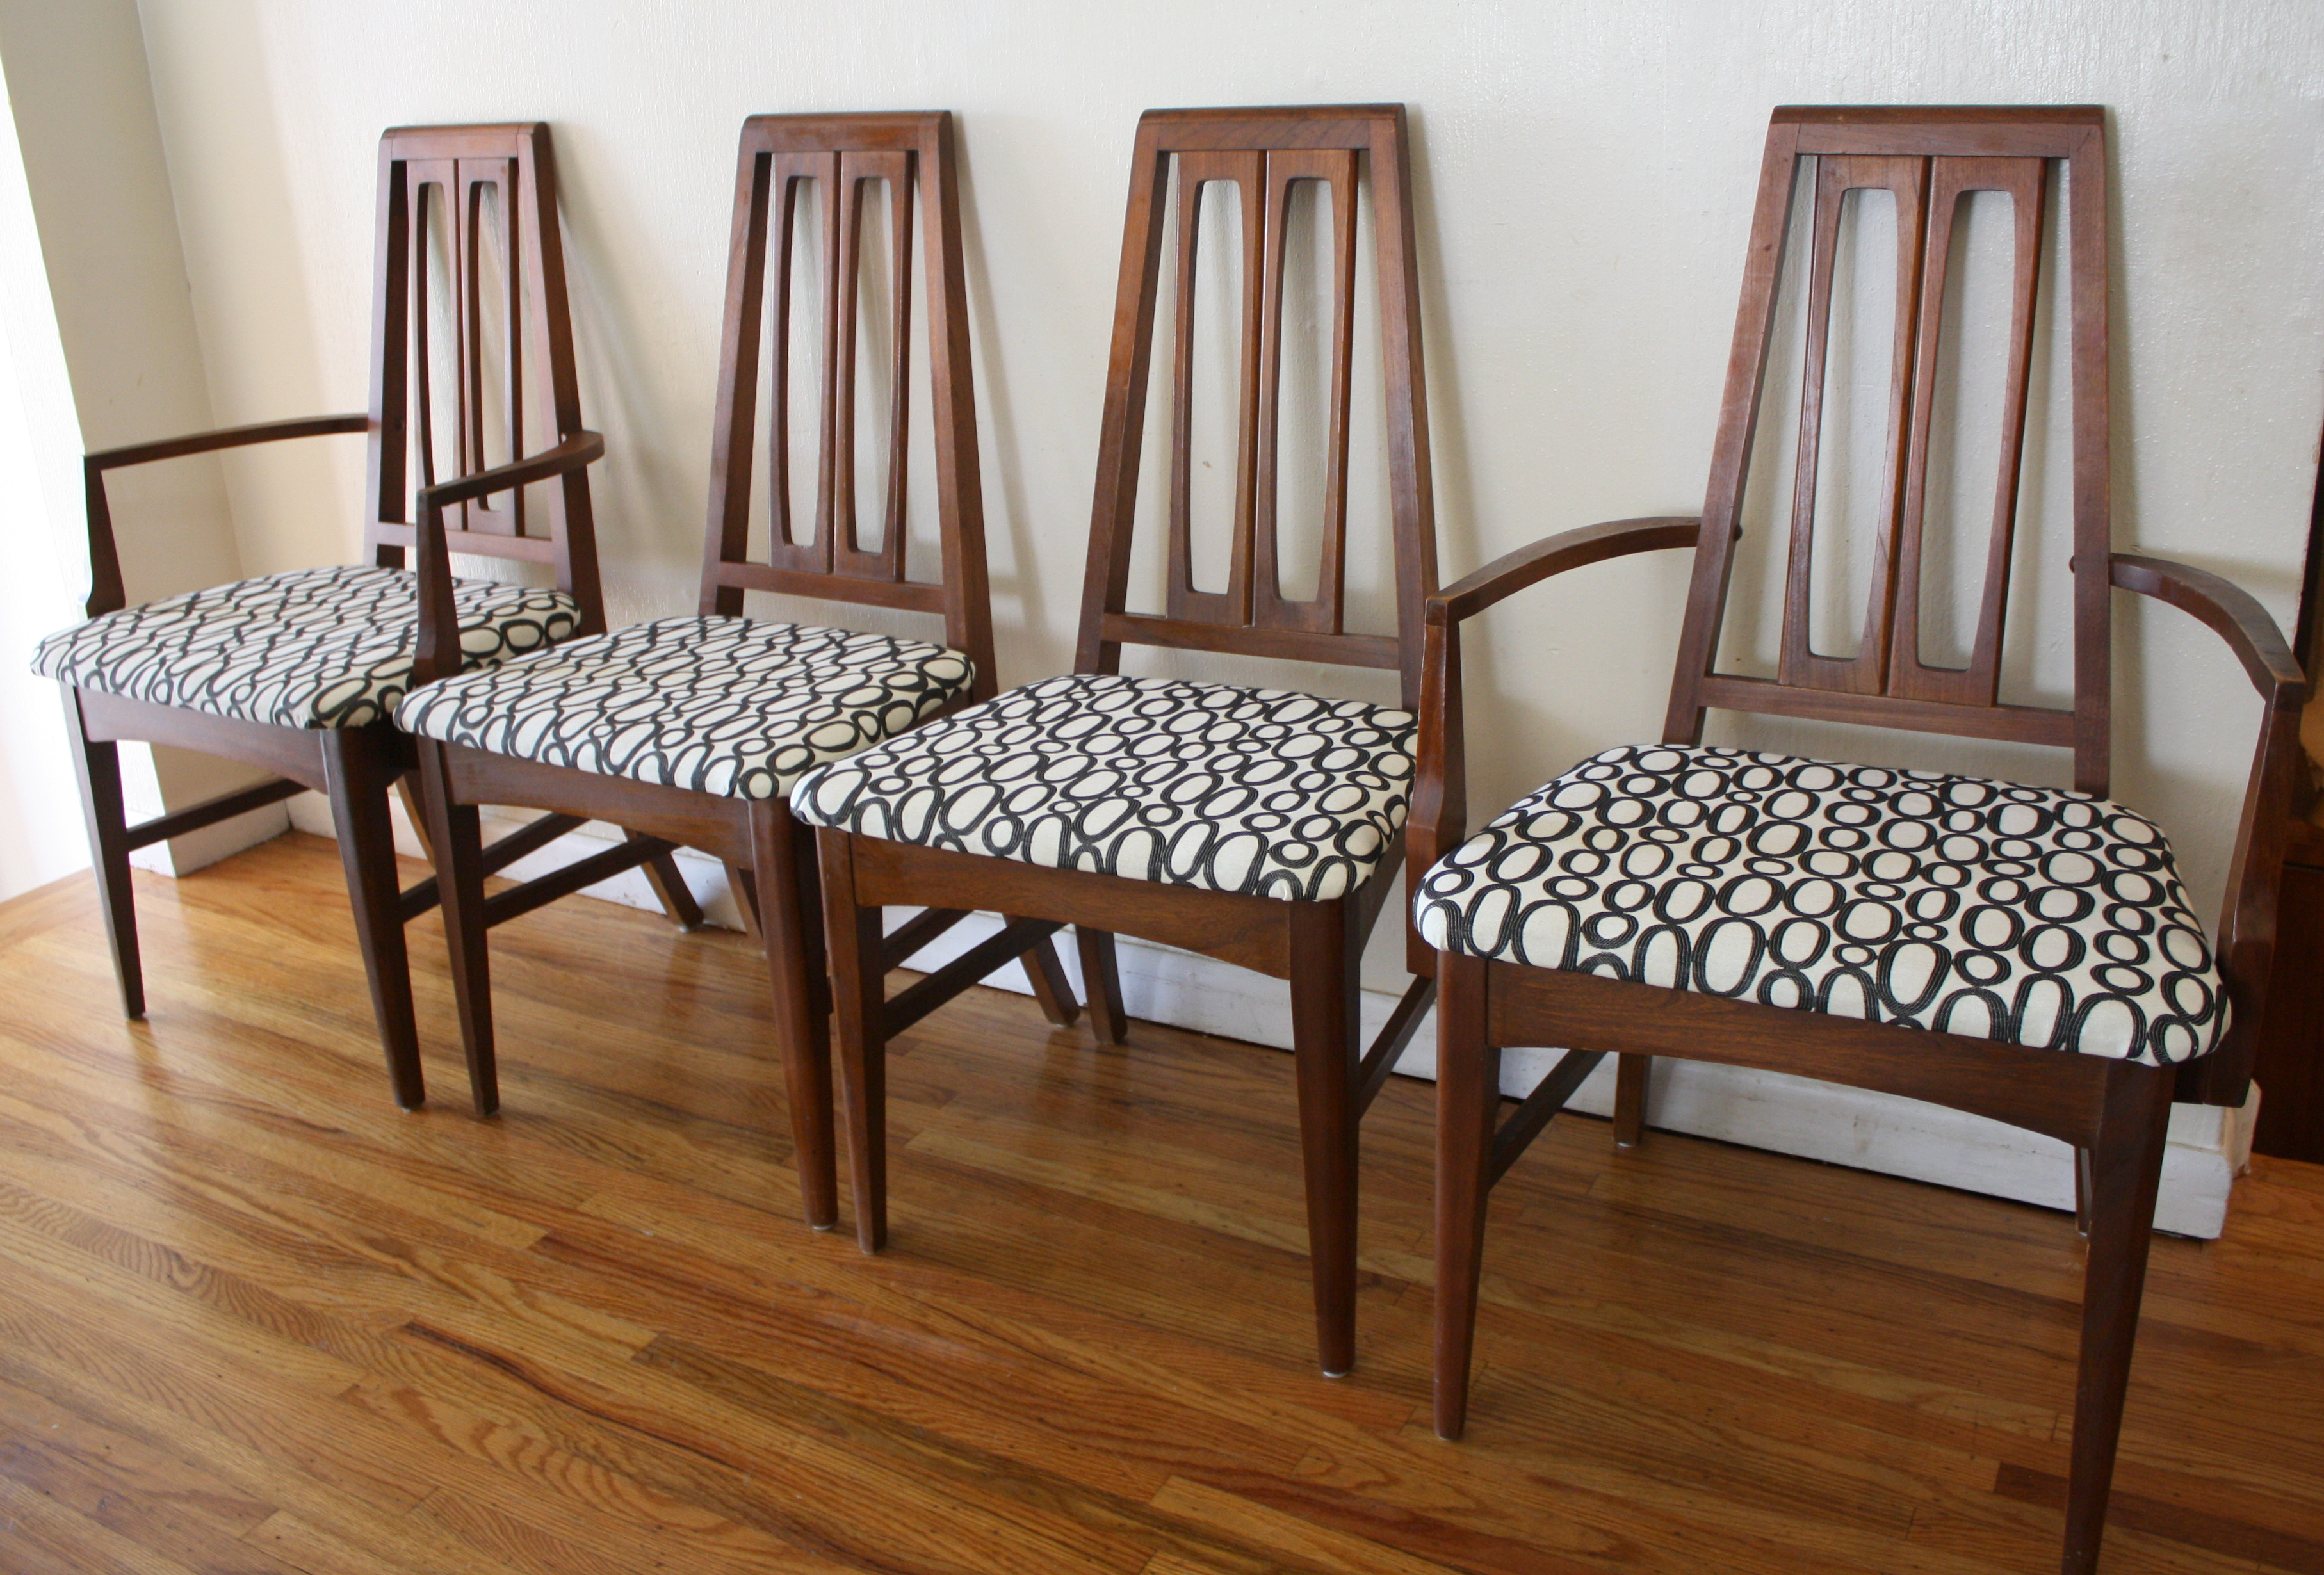 mid century modern dining chairs picked vintage. Black Bedroom Furniture Sets. Home Design Ideas